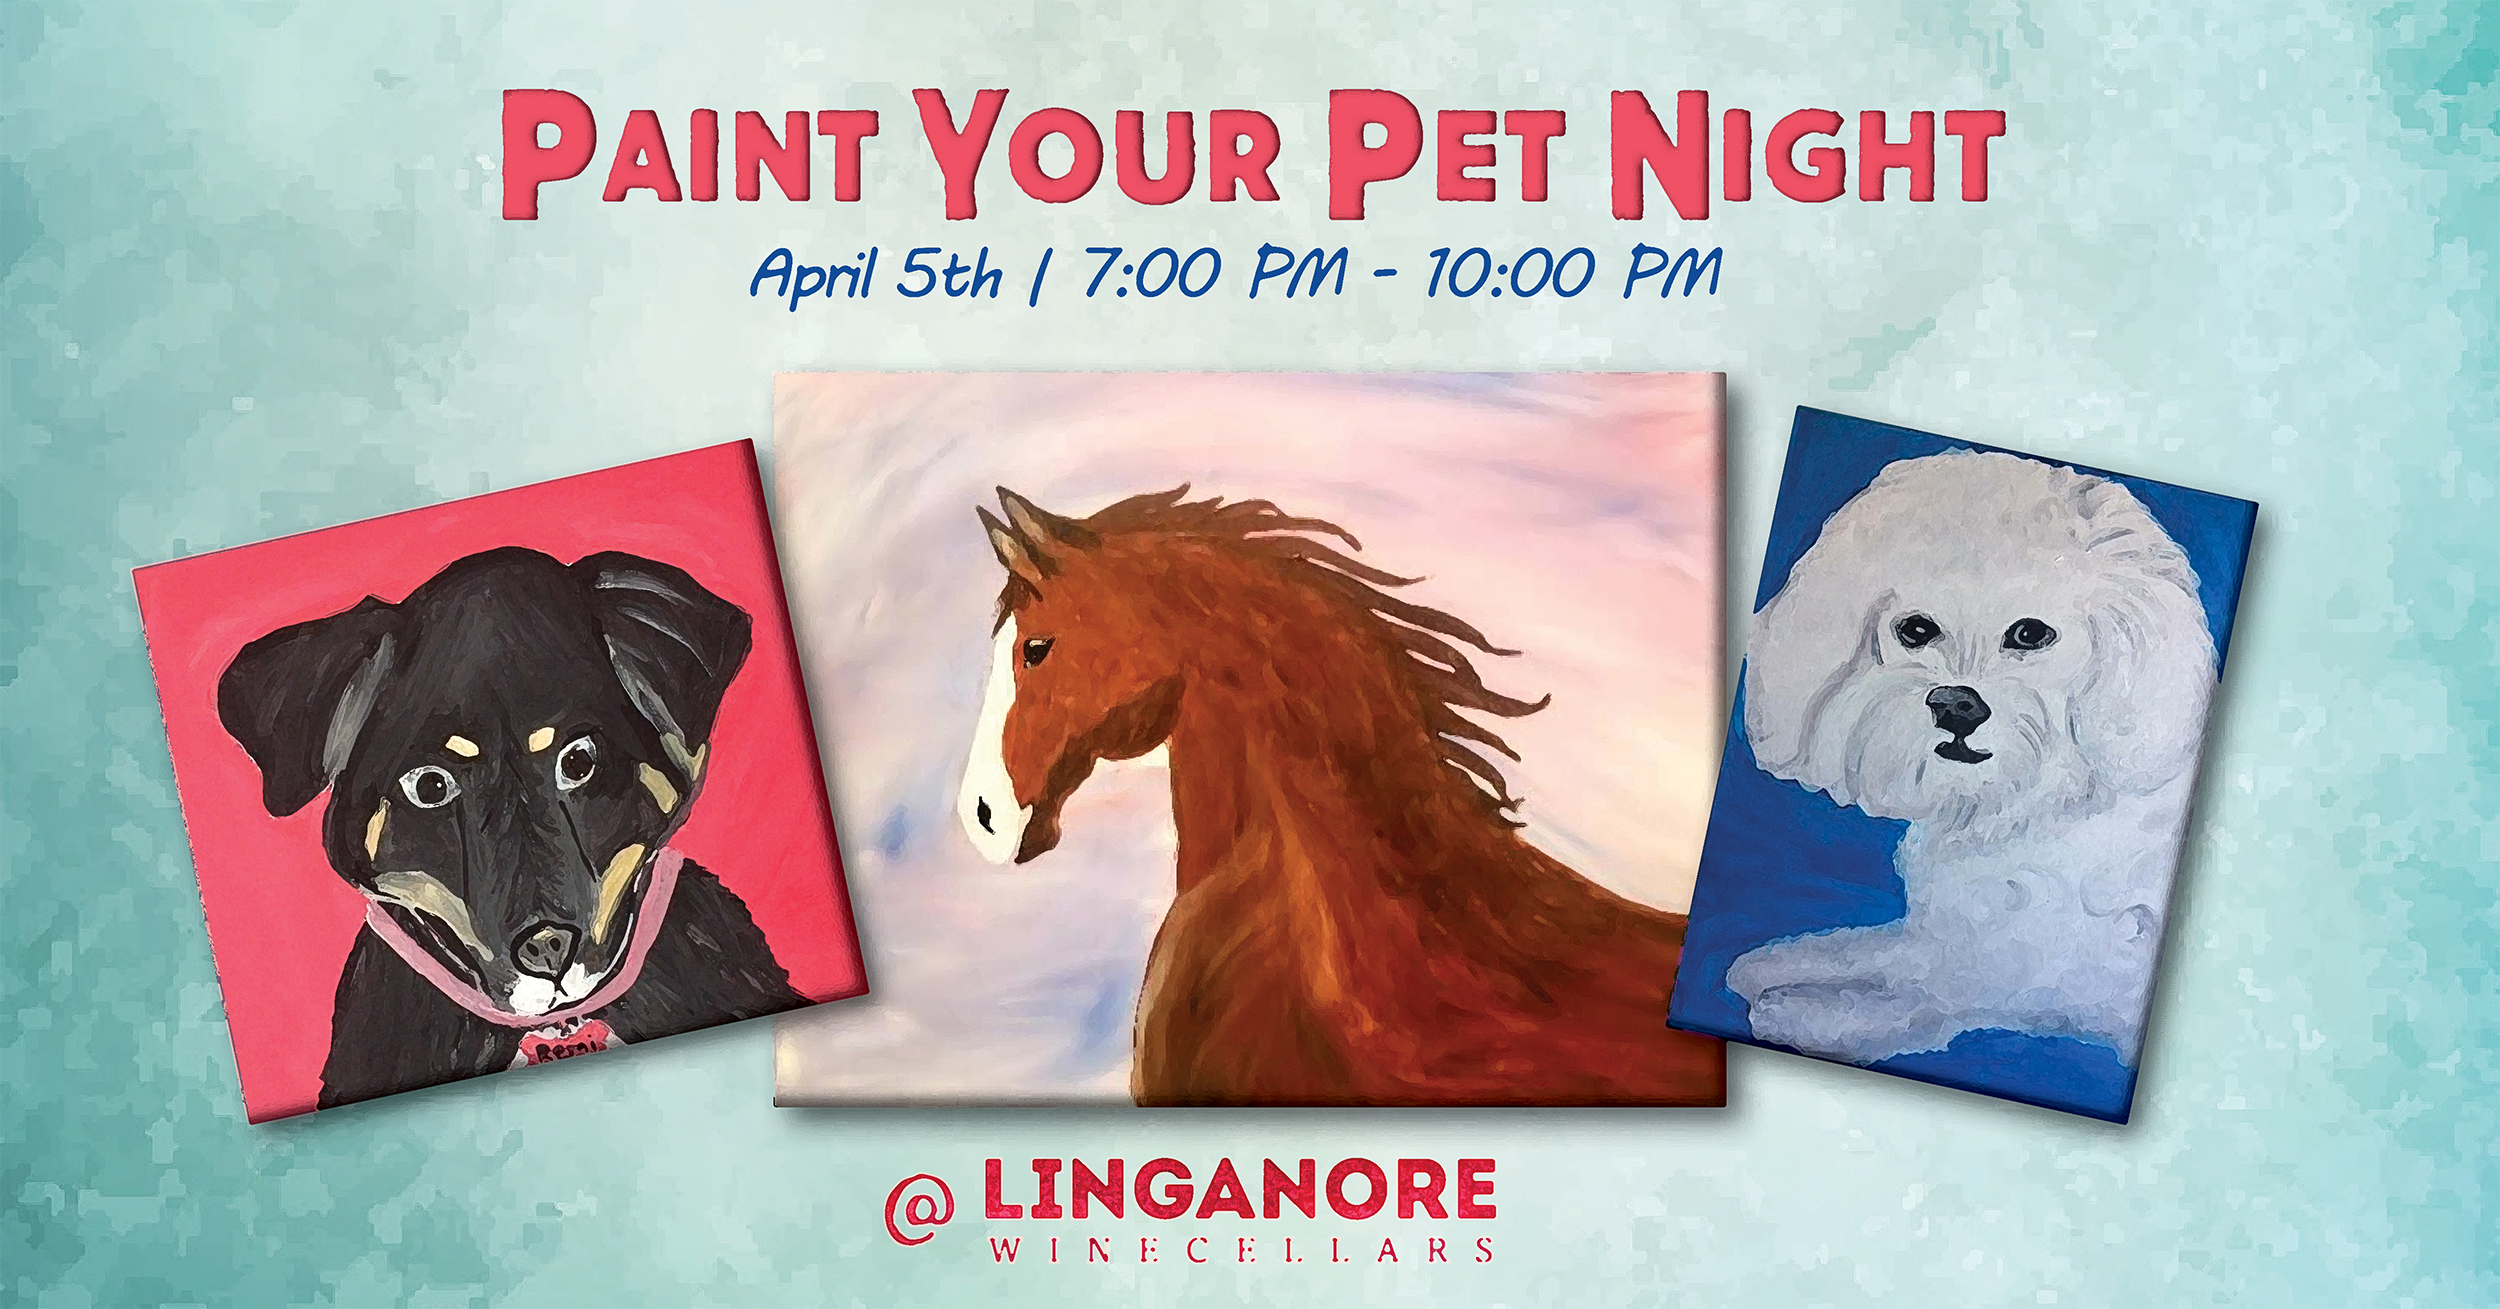 Paint your pet night is April 5th